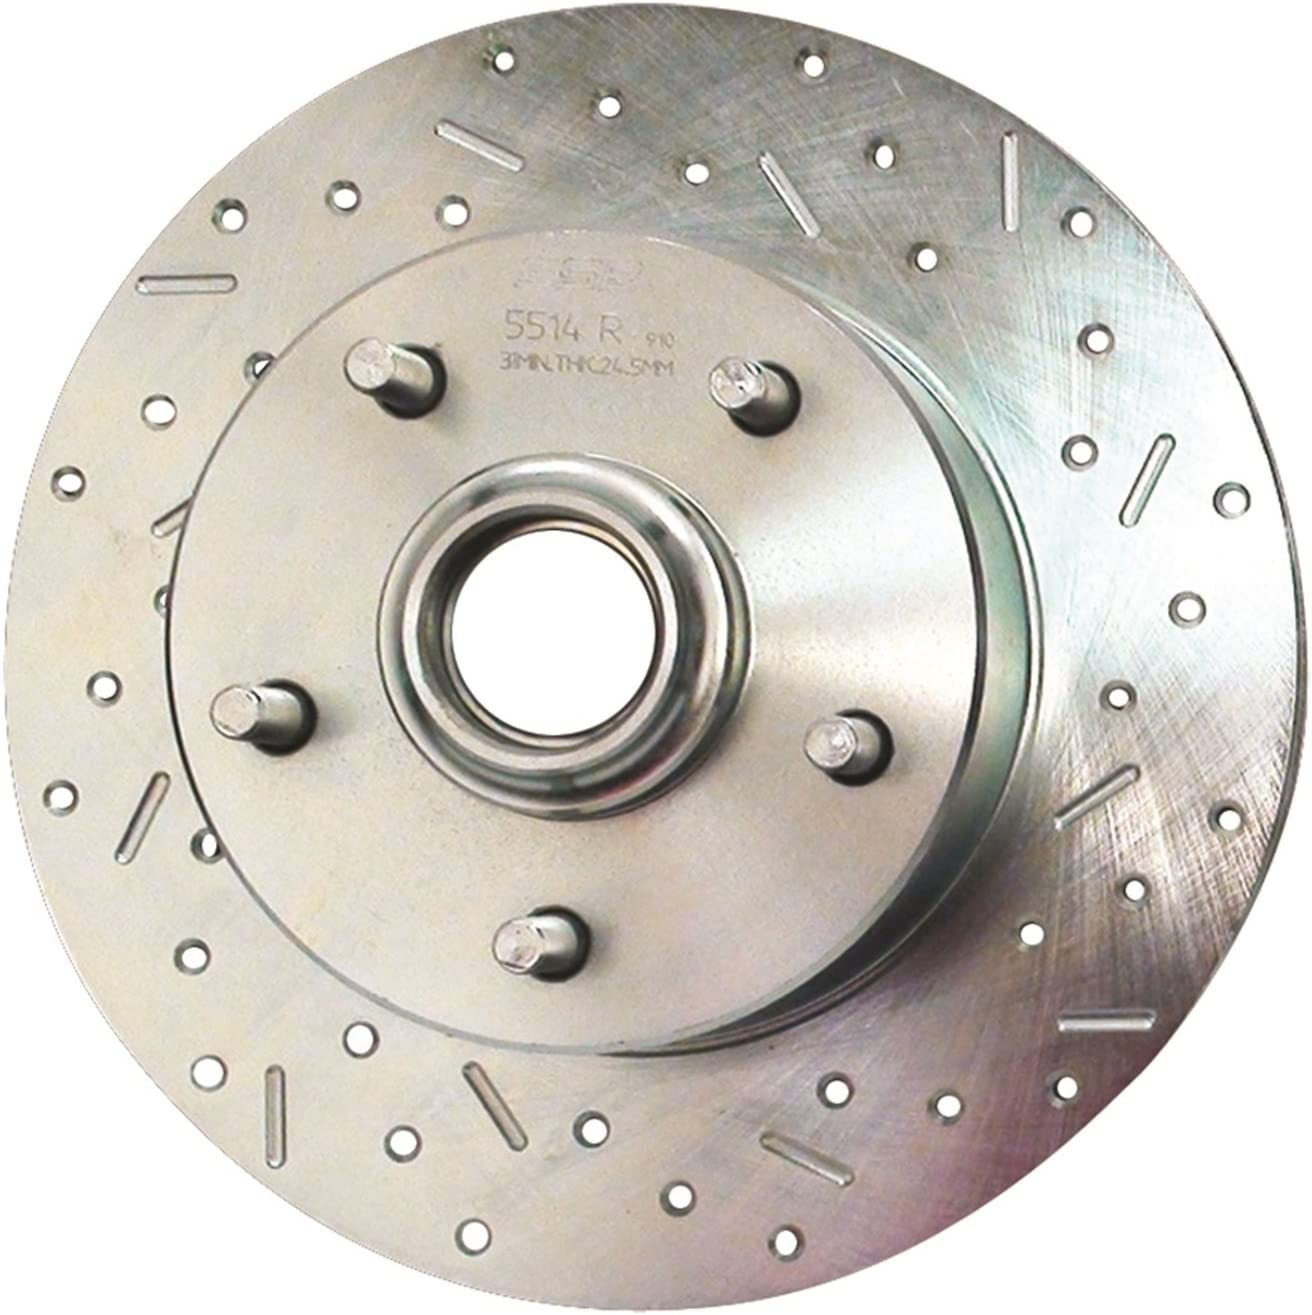 SSBC 33064AA3R Drilled Slotted Plated Rear Passenger Side Rotor for 1980-81 200SX with Rear Disc